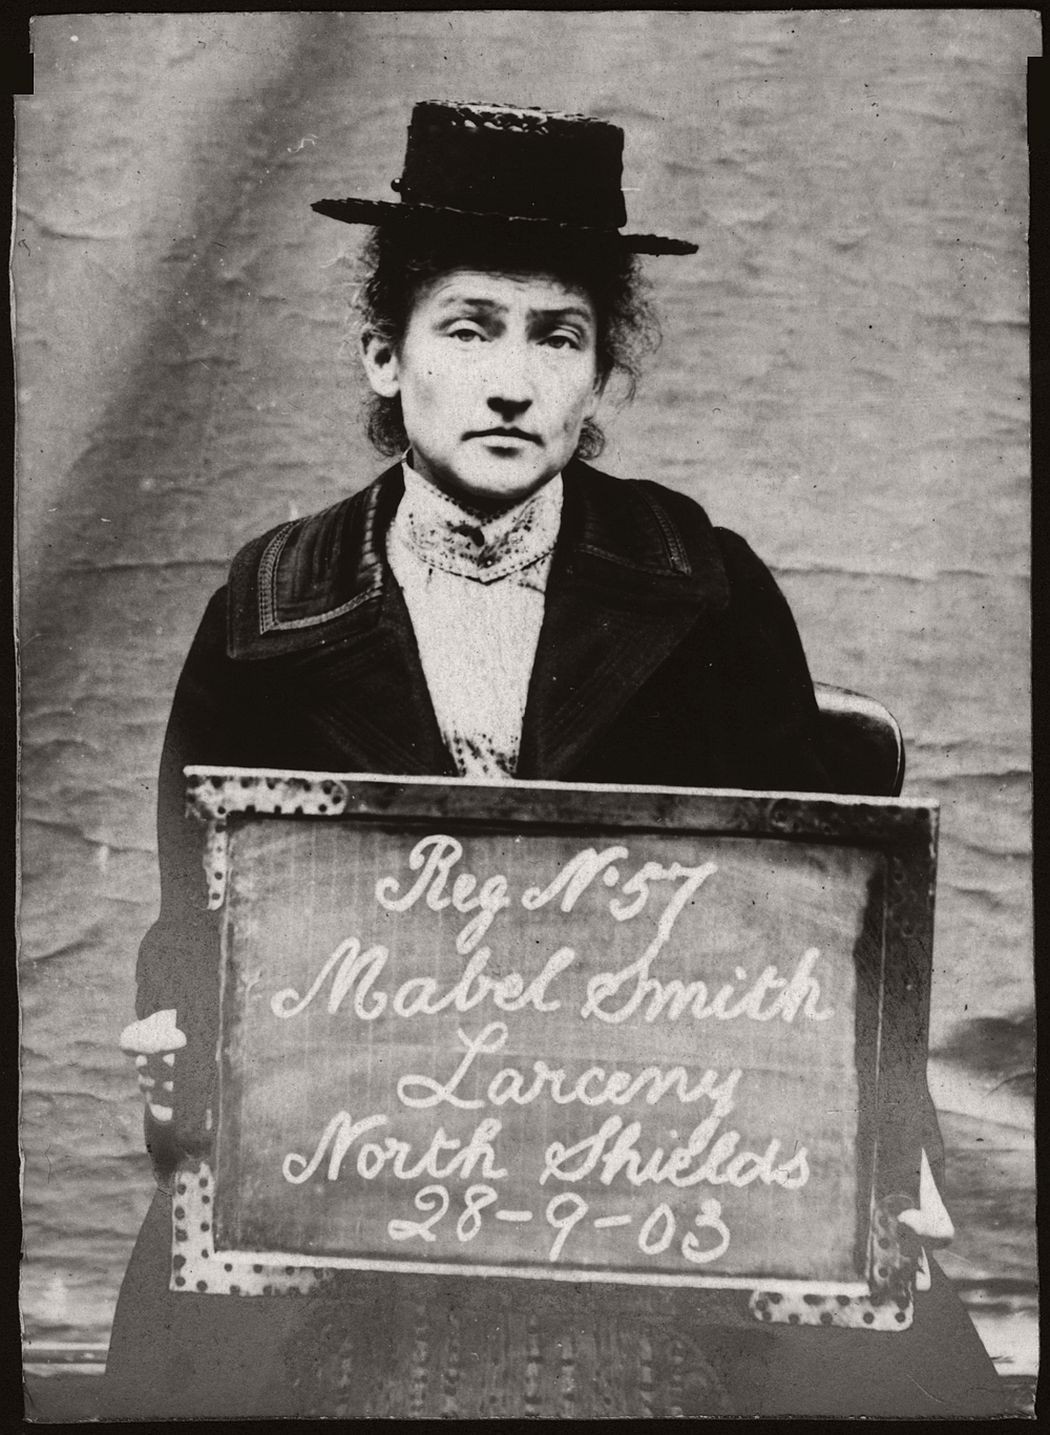 vintage-mug-shot-of-women-criminals-from-north-shields-1903-1905-09